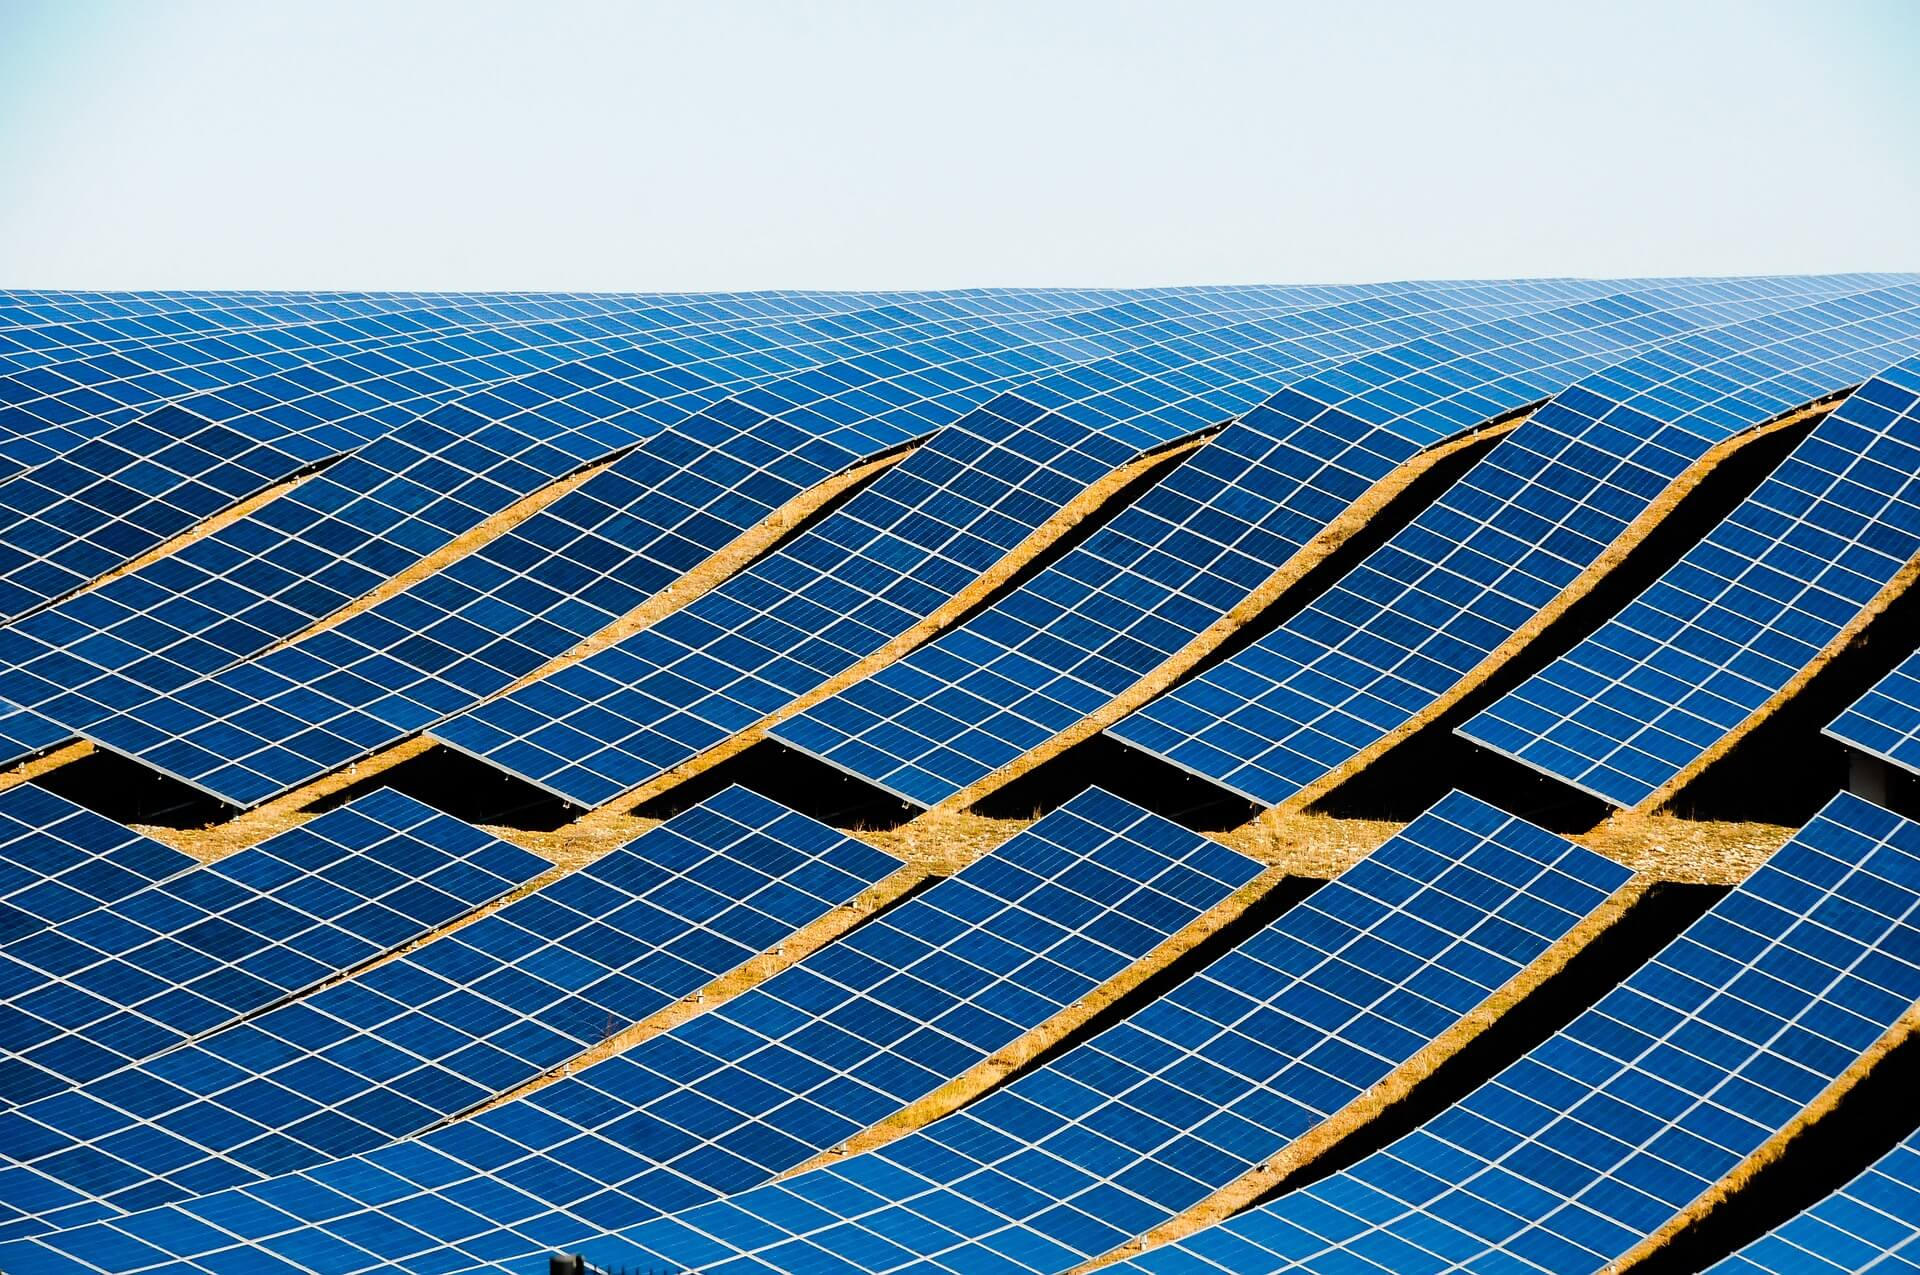 Spain has the potential to be an international photovoltaic hub